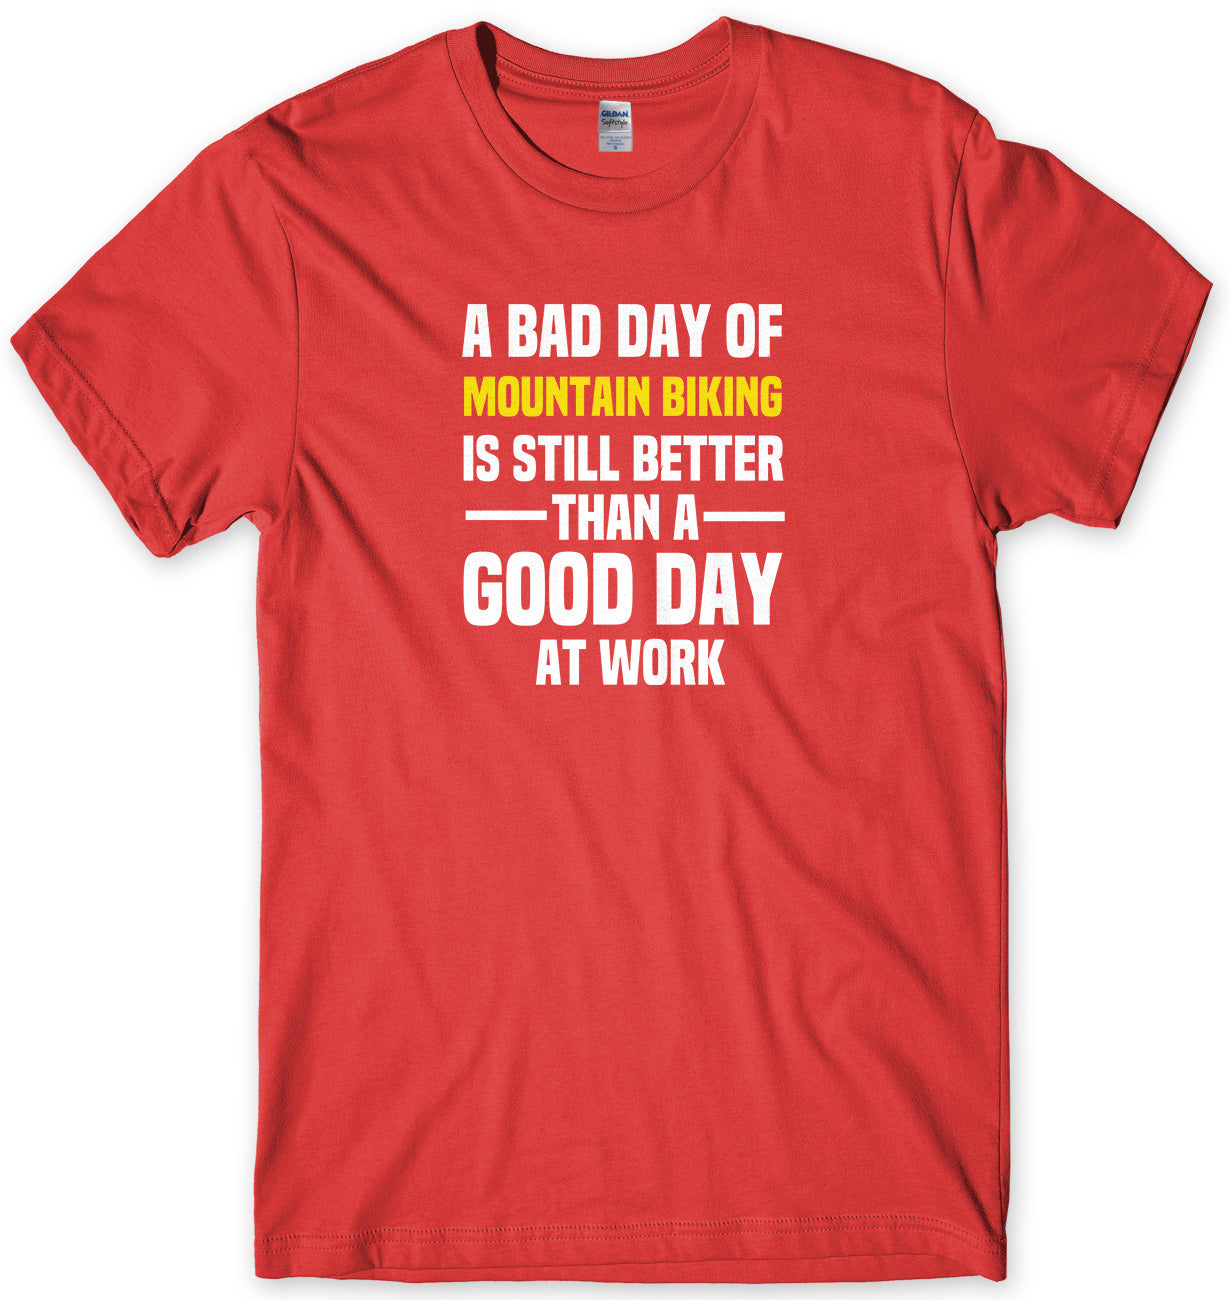 A BAD DAY OF MOUNTAIN BIKING IS STILL BETTER THAN A GOOD DAY AT WORK MENS FUNNY SLOGAN UNISEX T-SHIRT - StreetSide Surgeons